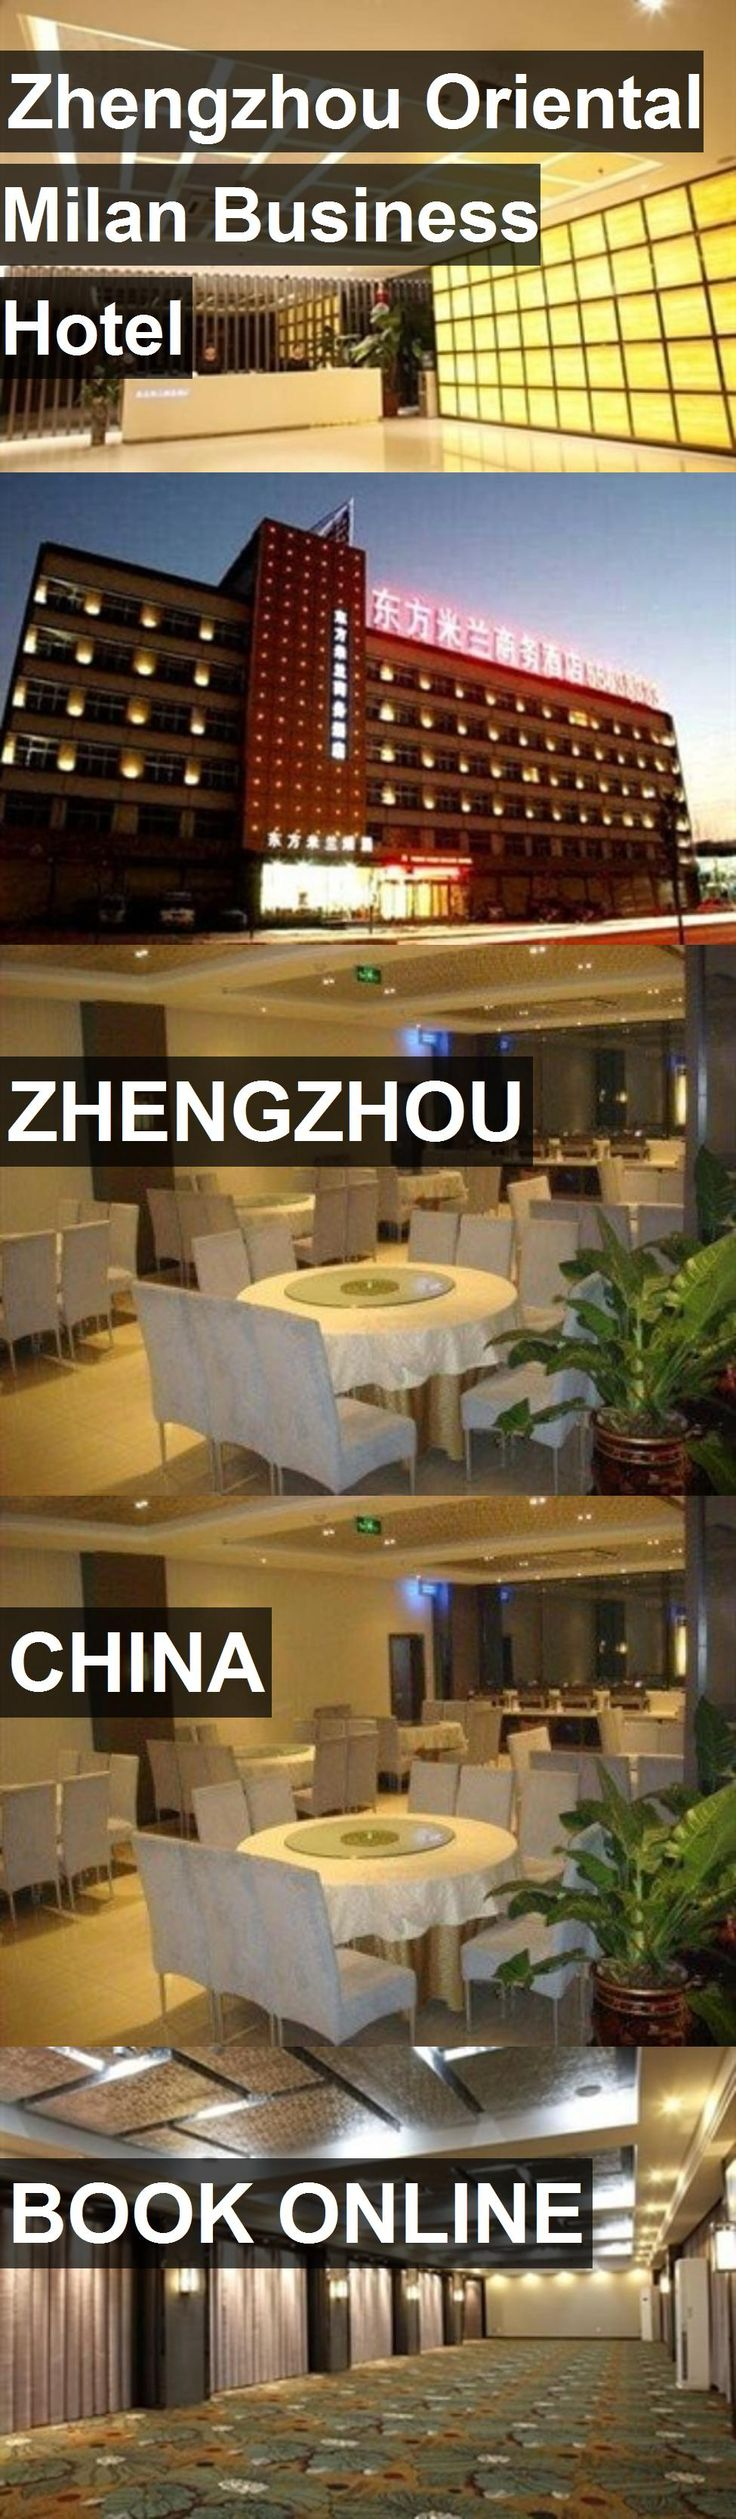 Zhengzhou Oriental Milan Business Hotel in Zhengzhou, China. For more information, photos, reviews and best prices please follow the link. #China #Zhengzhou #travel #vacation #hotel